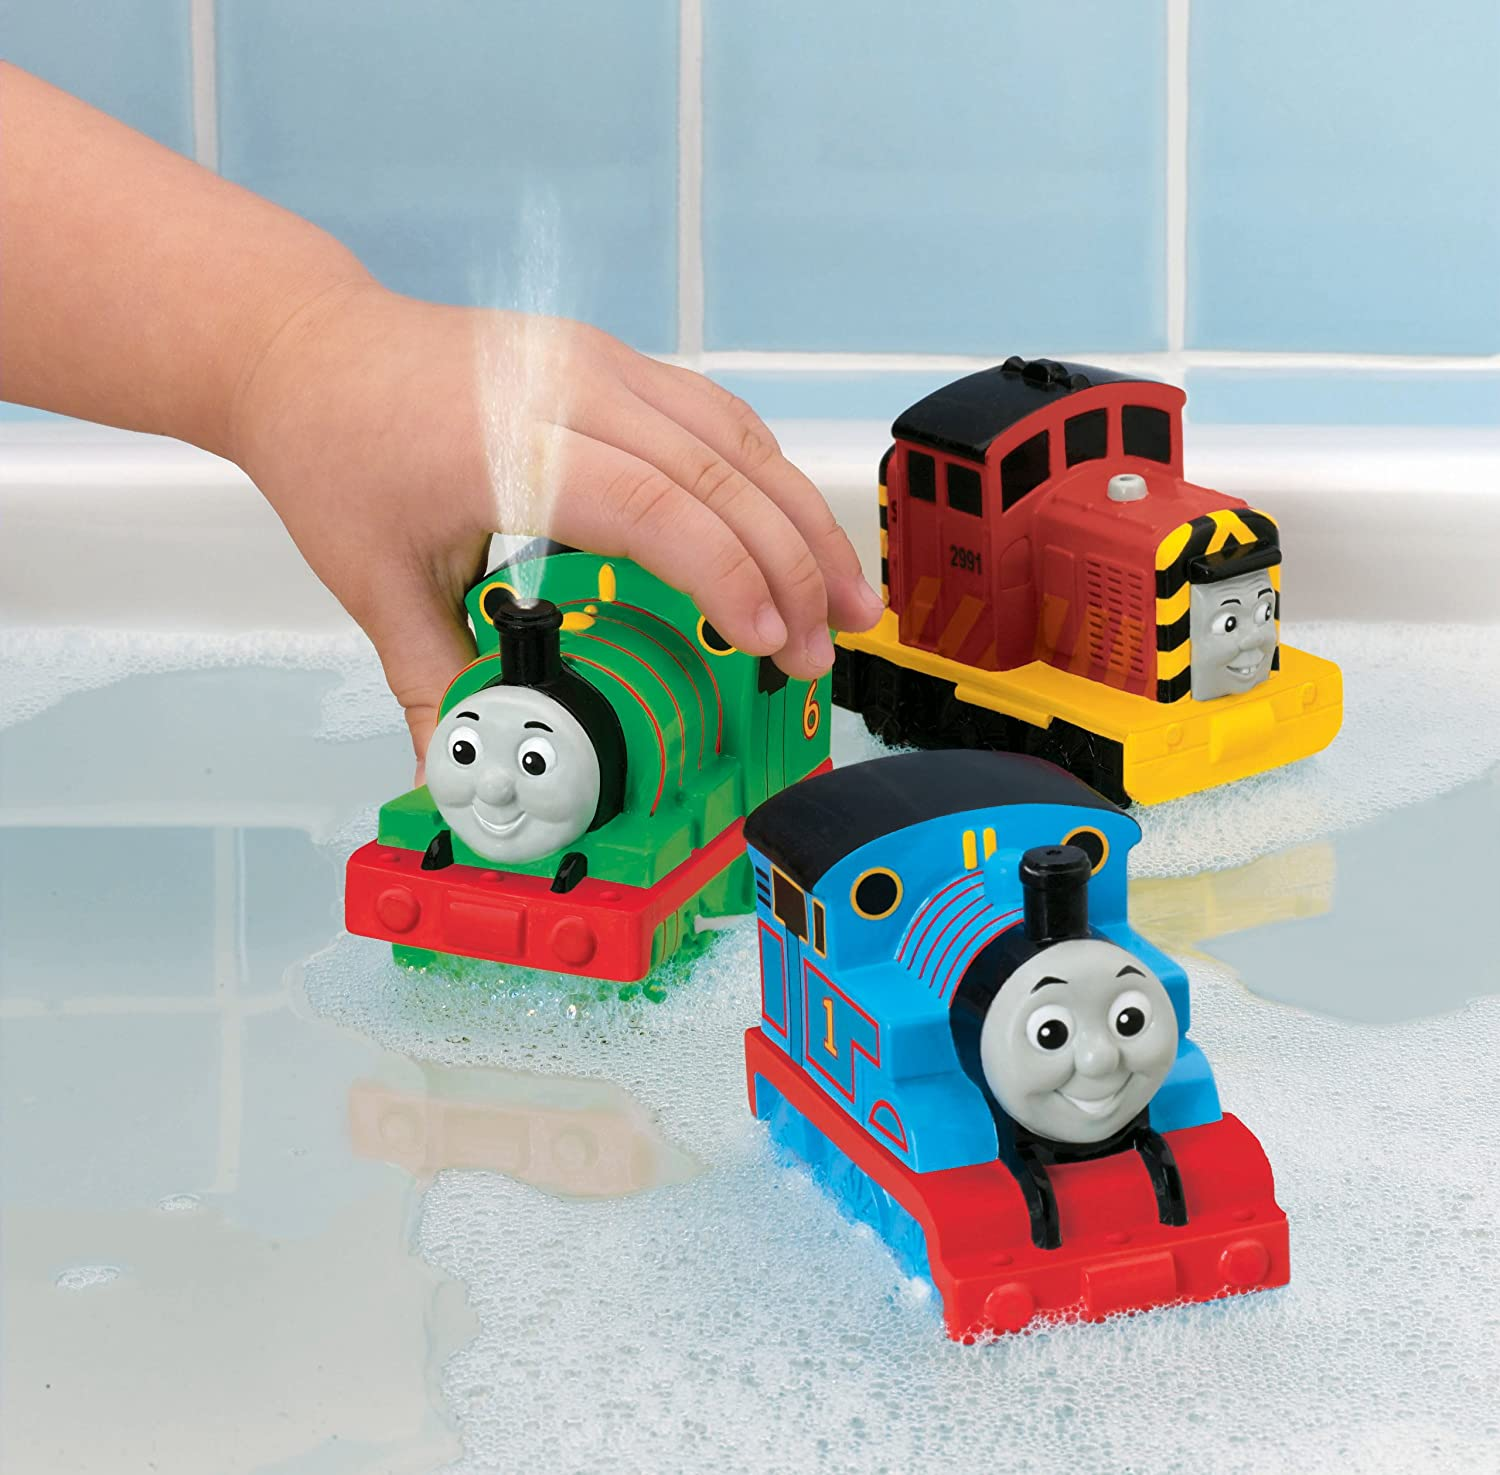 Thomas the train bathroom set - Amazon Com Fisher Price Thomas And Friends Bath Squirters 3 Pack Styles May Vary Toys Games